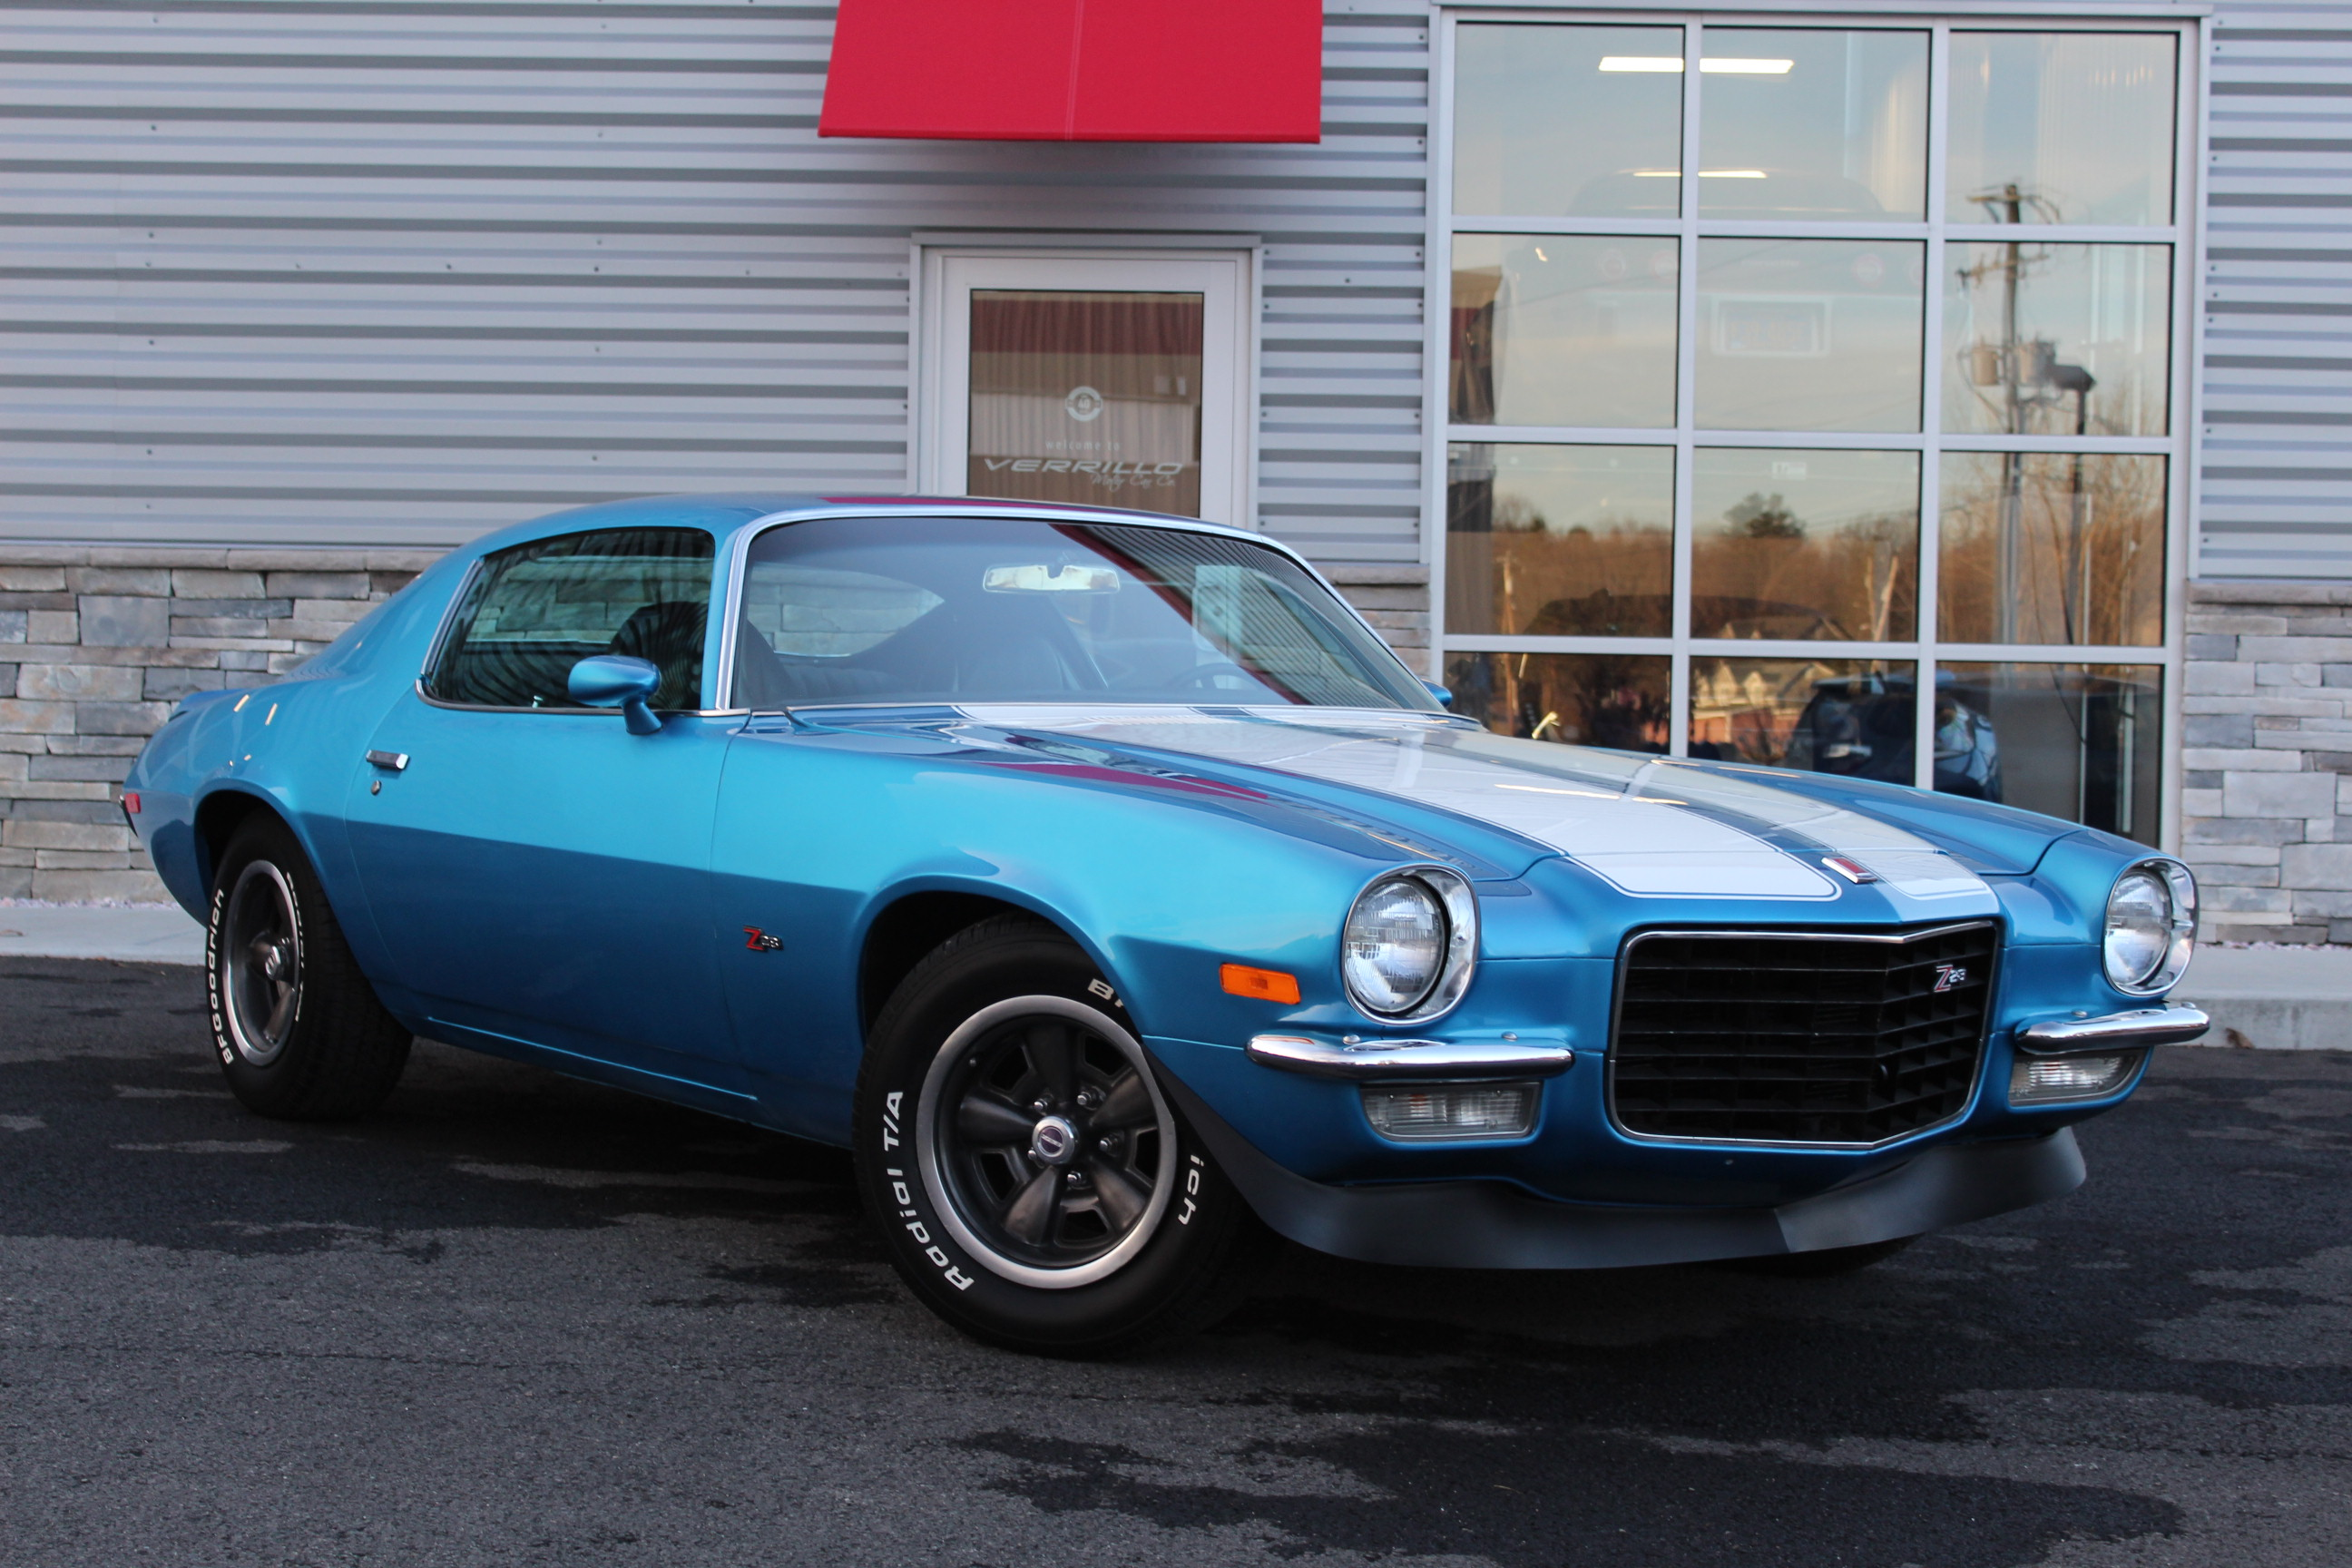 VMC Camaro featured in Motorious Muscle Car Auction